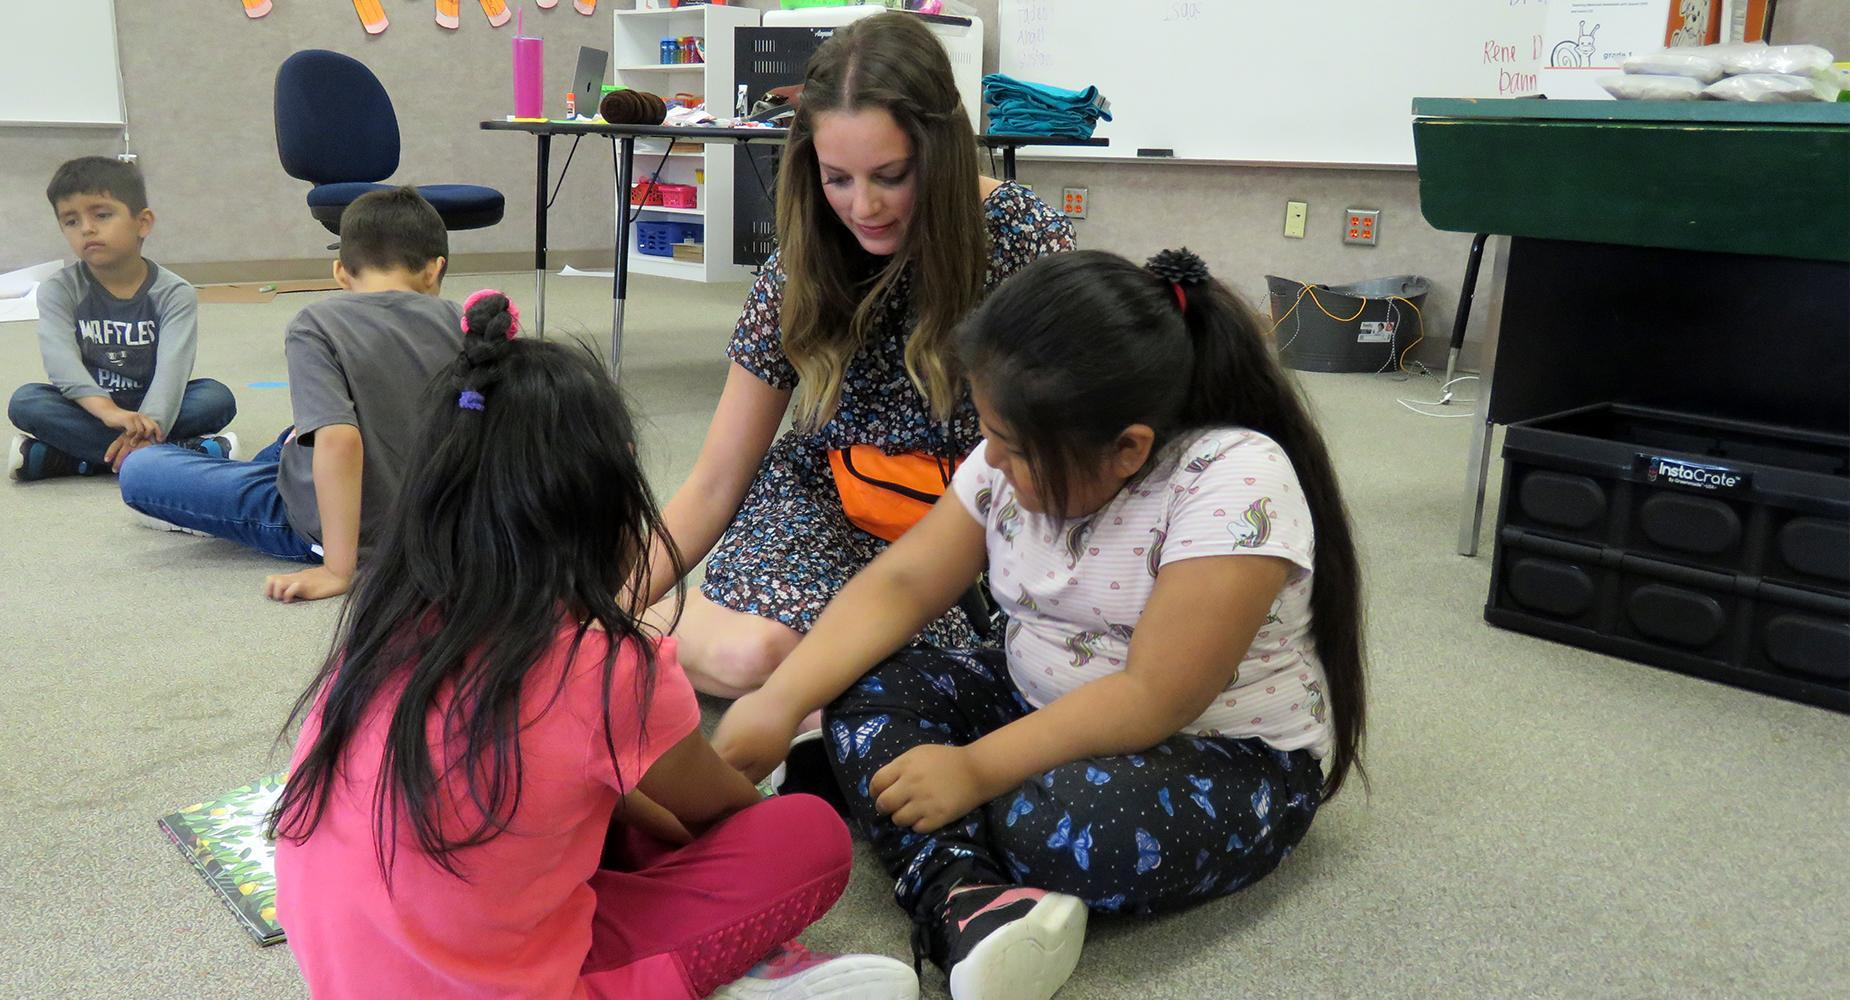 Teacher sits on the floor with two female students as she helps them with a book